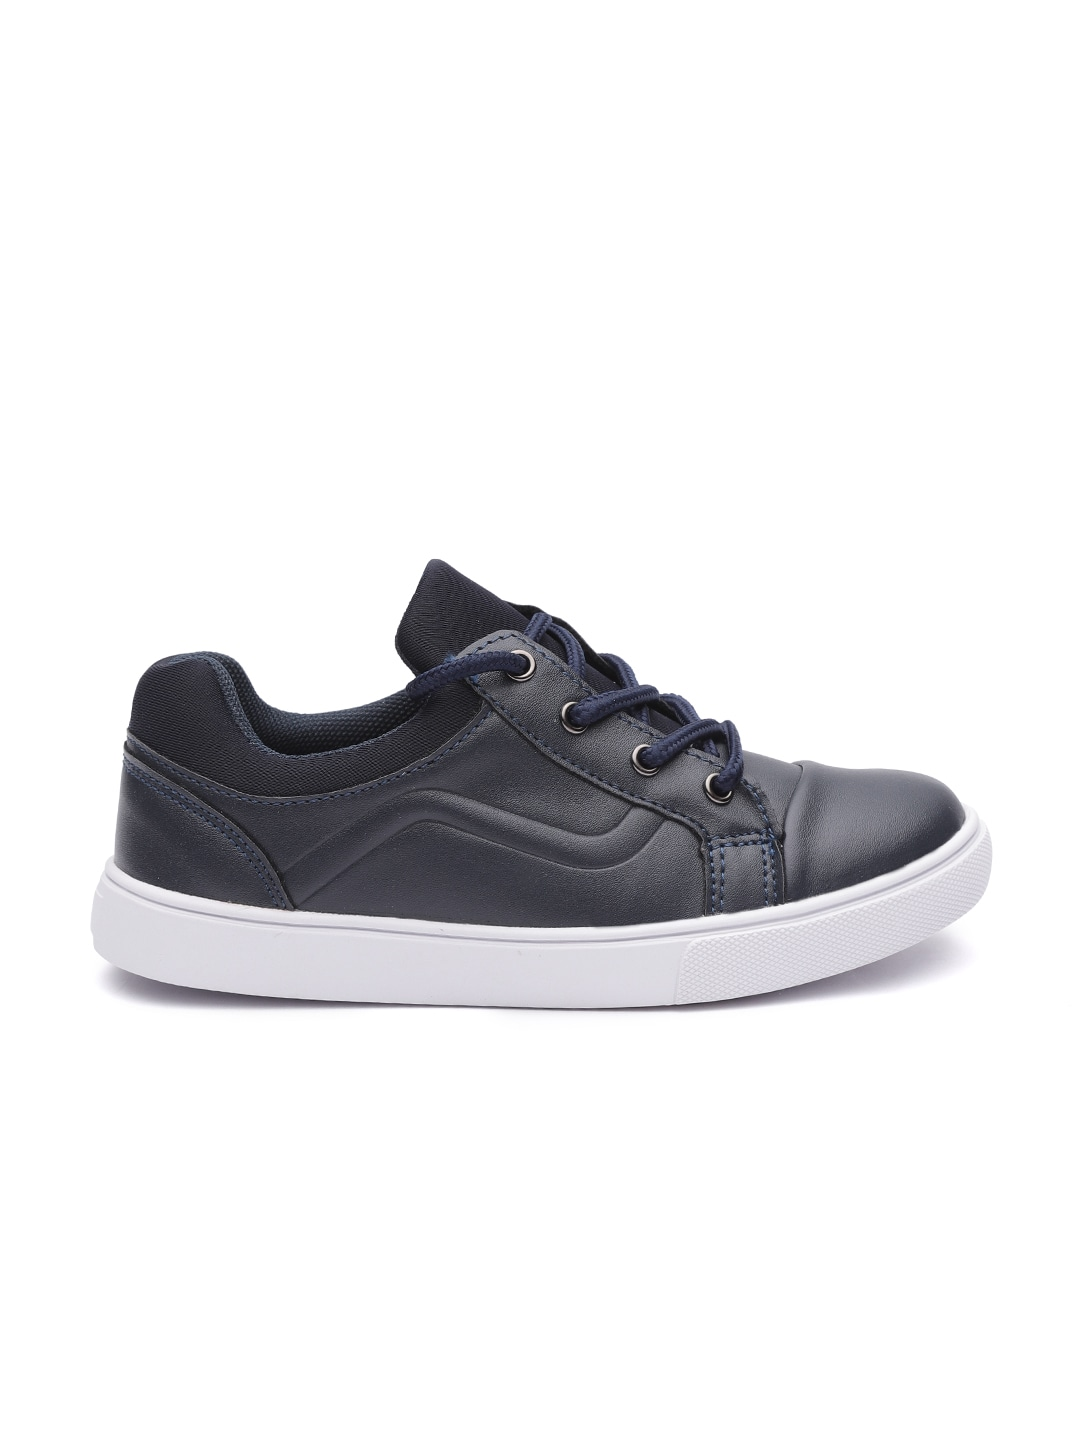 a3a91fad15 Kids Shoes Shoe Accessories - Buy Kids Shoes Shoe Accessories online in  India